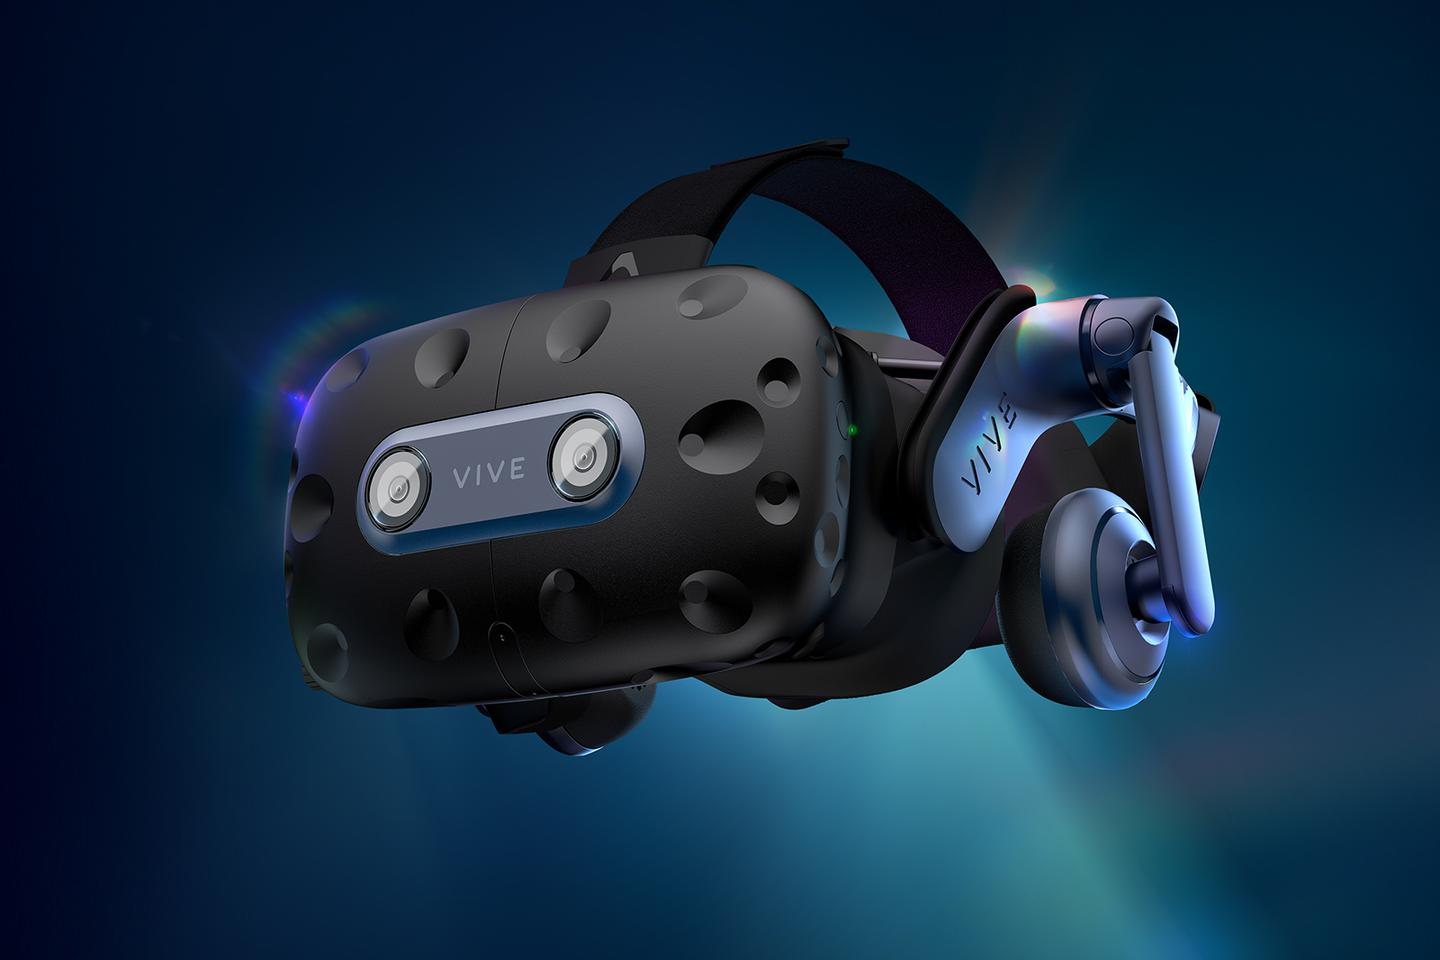 The HTC Vive Pro 2 is for connect